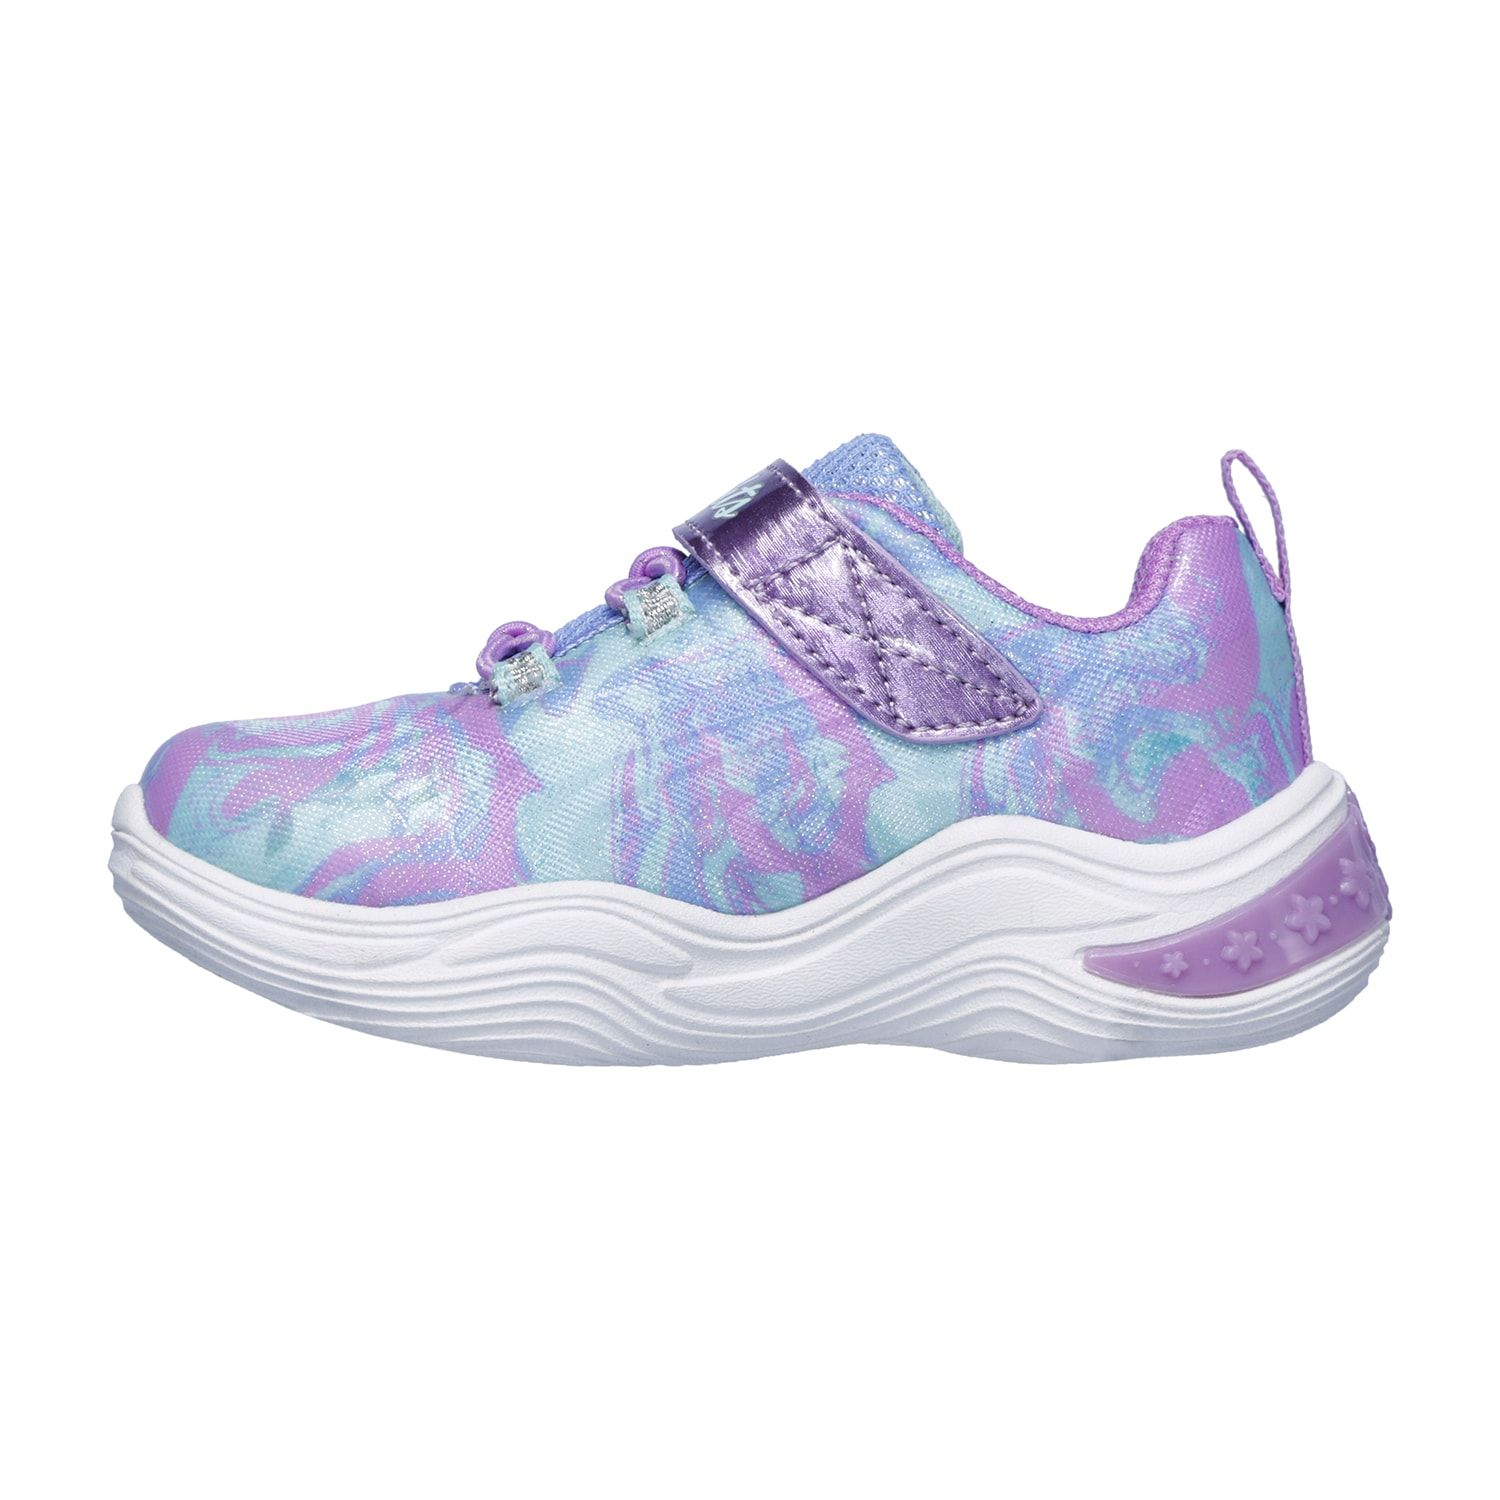 9c7bc769e1df Skechers S Lights Power Petals Toddler Girls  Light Up Shoes in 2019 ...